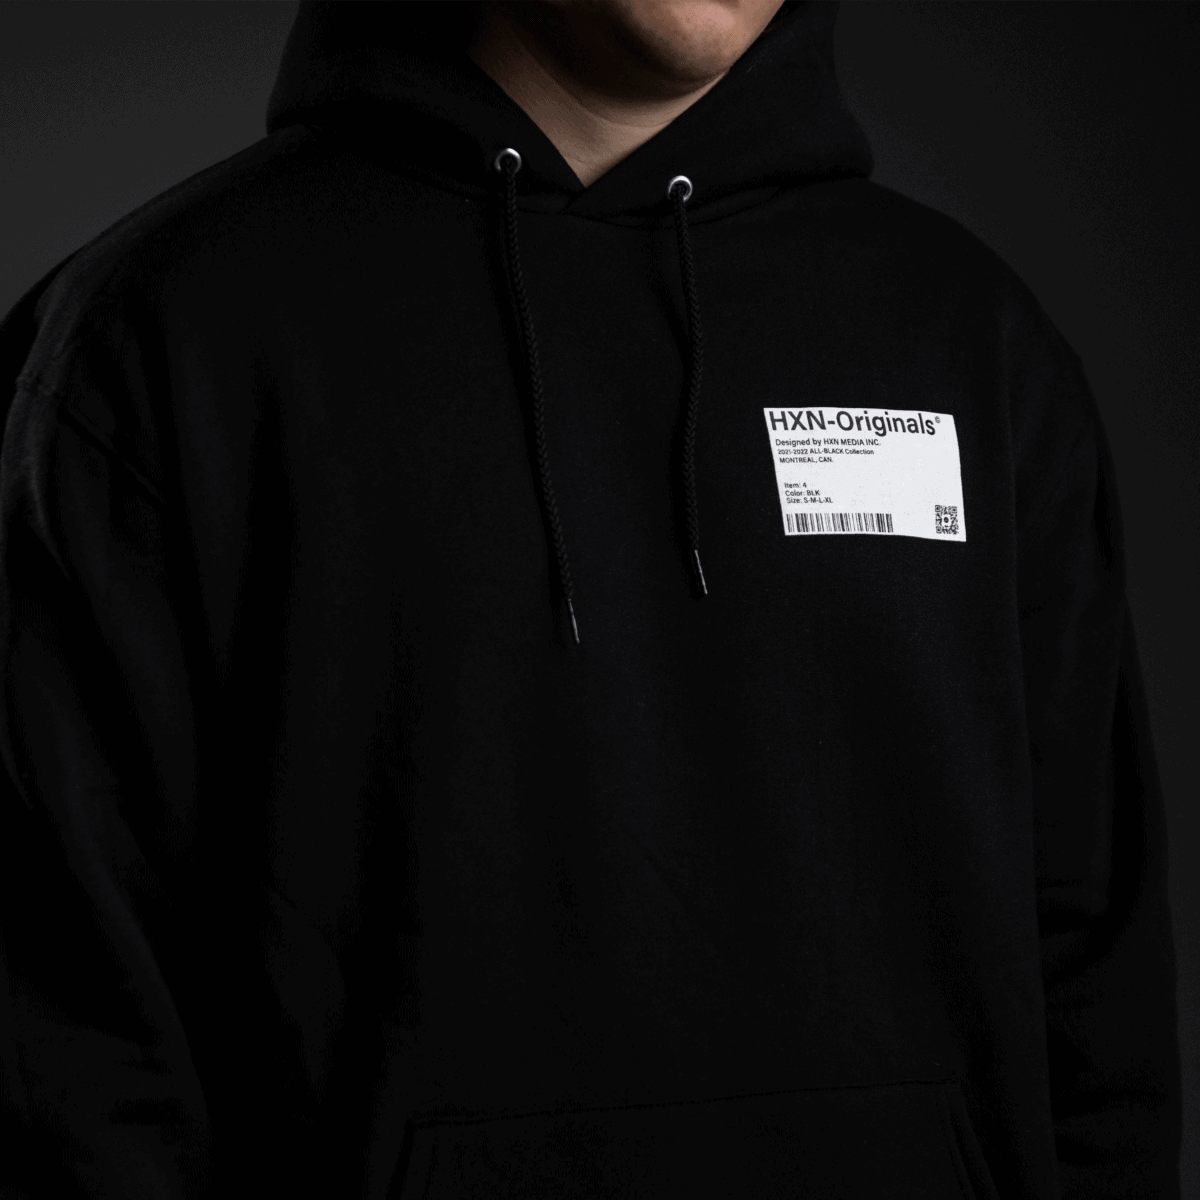 fresh out the factory hoodie front hxn media